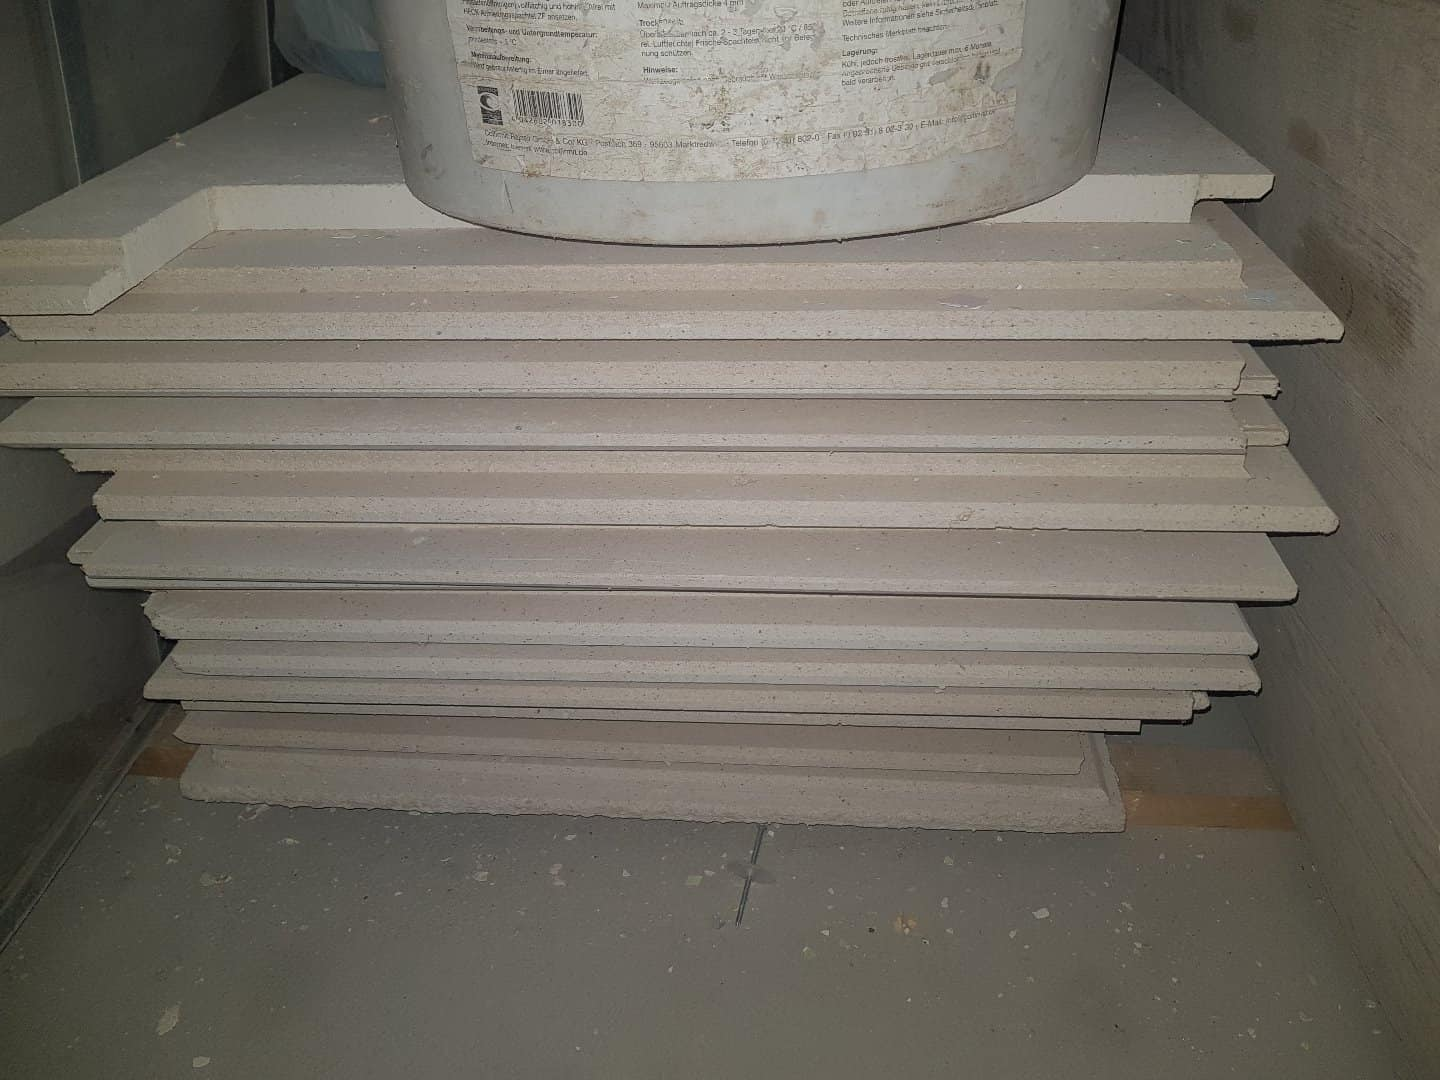 Knauf Brio 23 Estrich-Element 1200 x 600 x 23 mm